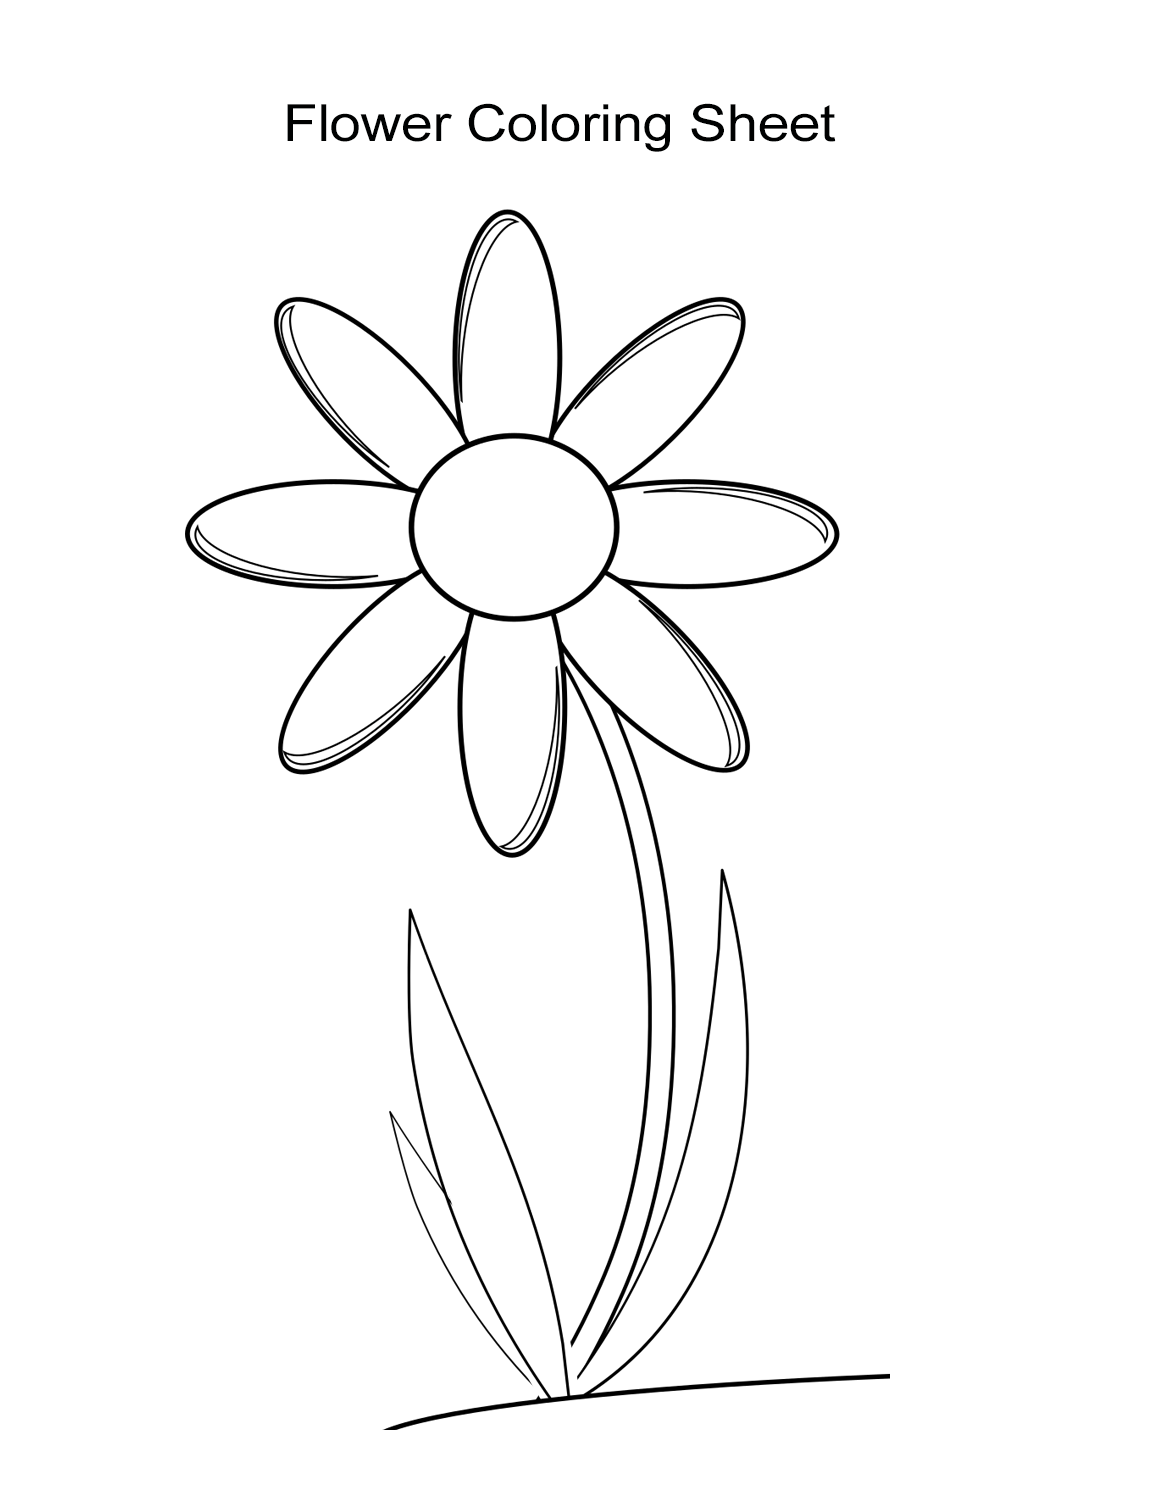 picture of flowers to colour 10 flower coloring sheets for girls and boys all esl to colour picture flowers of